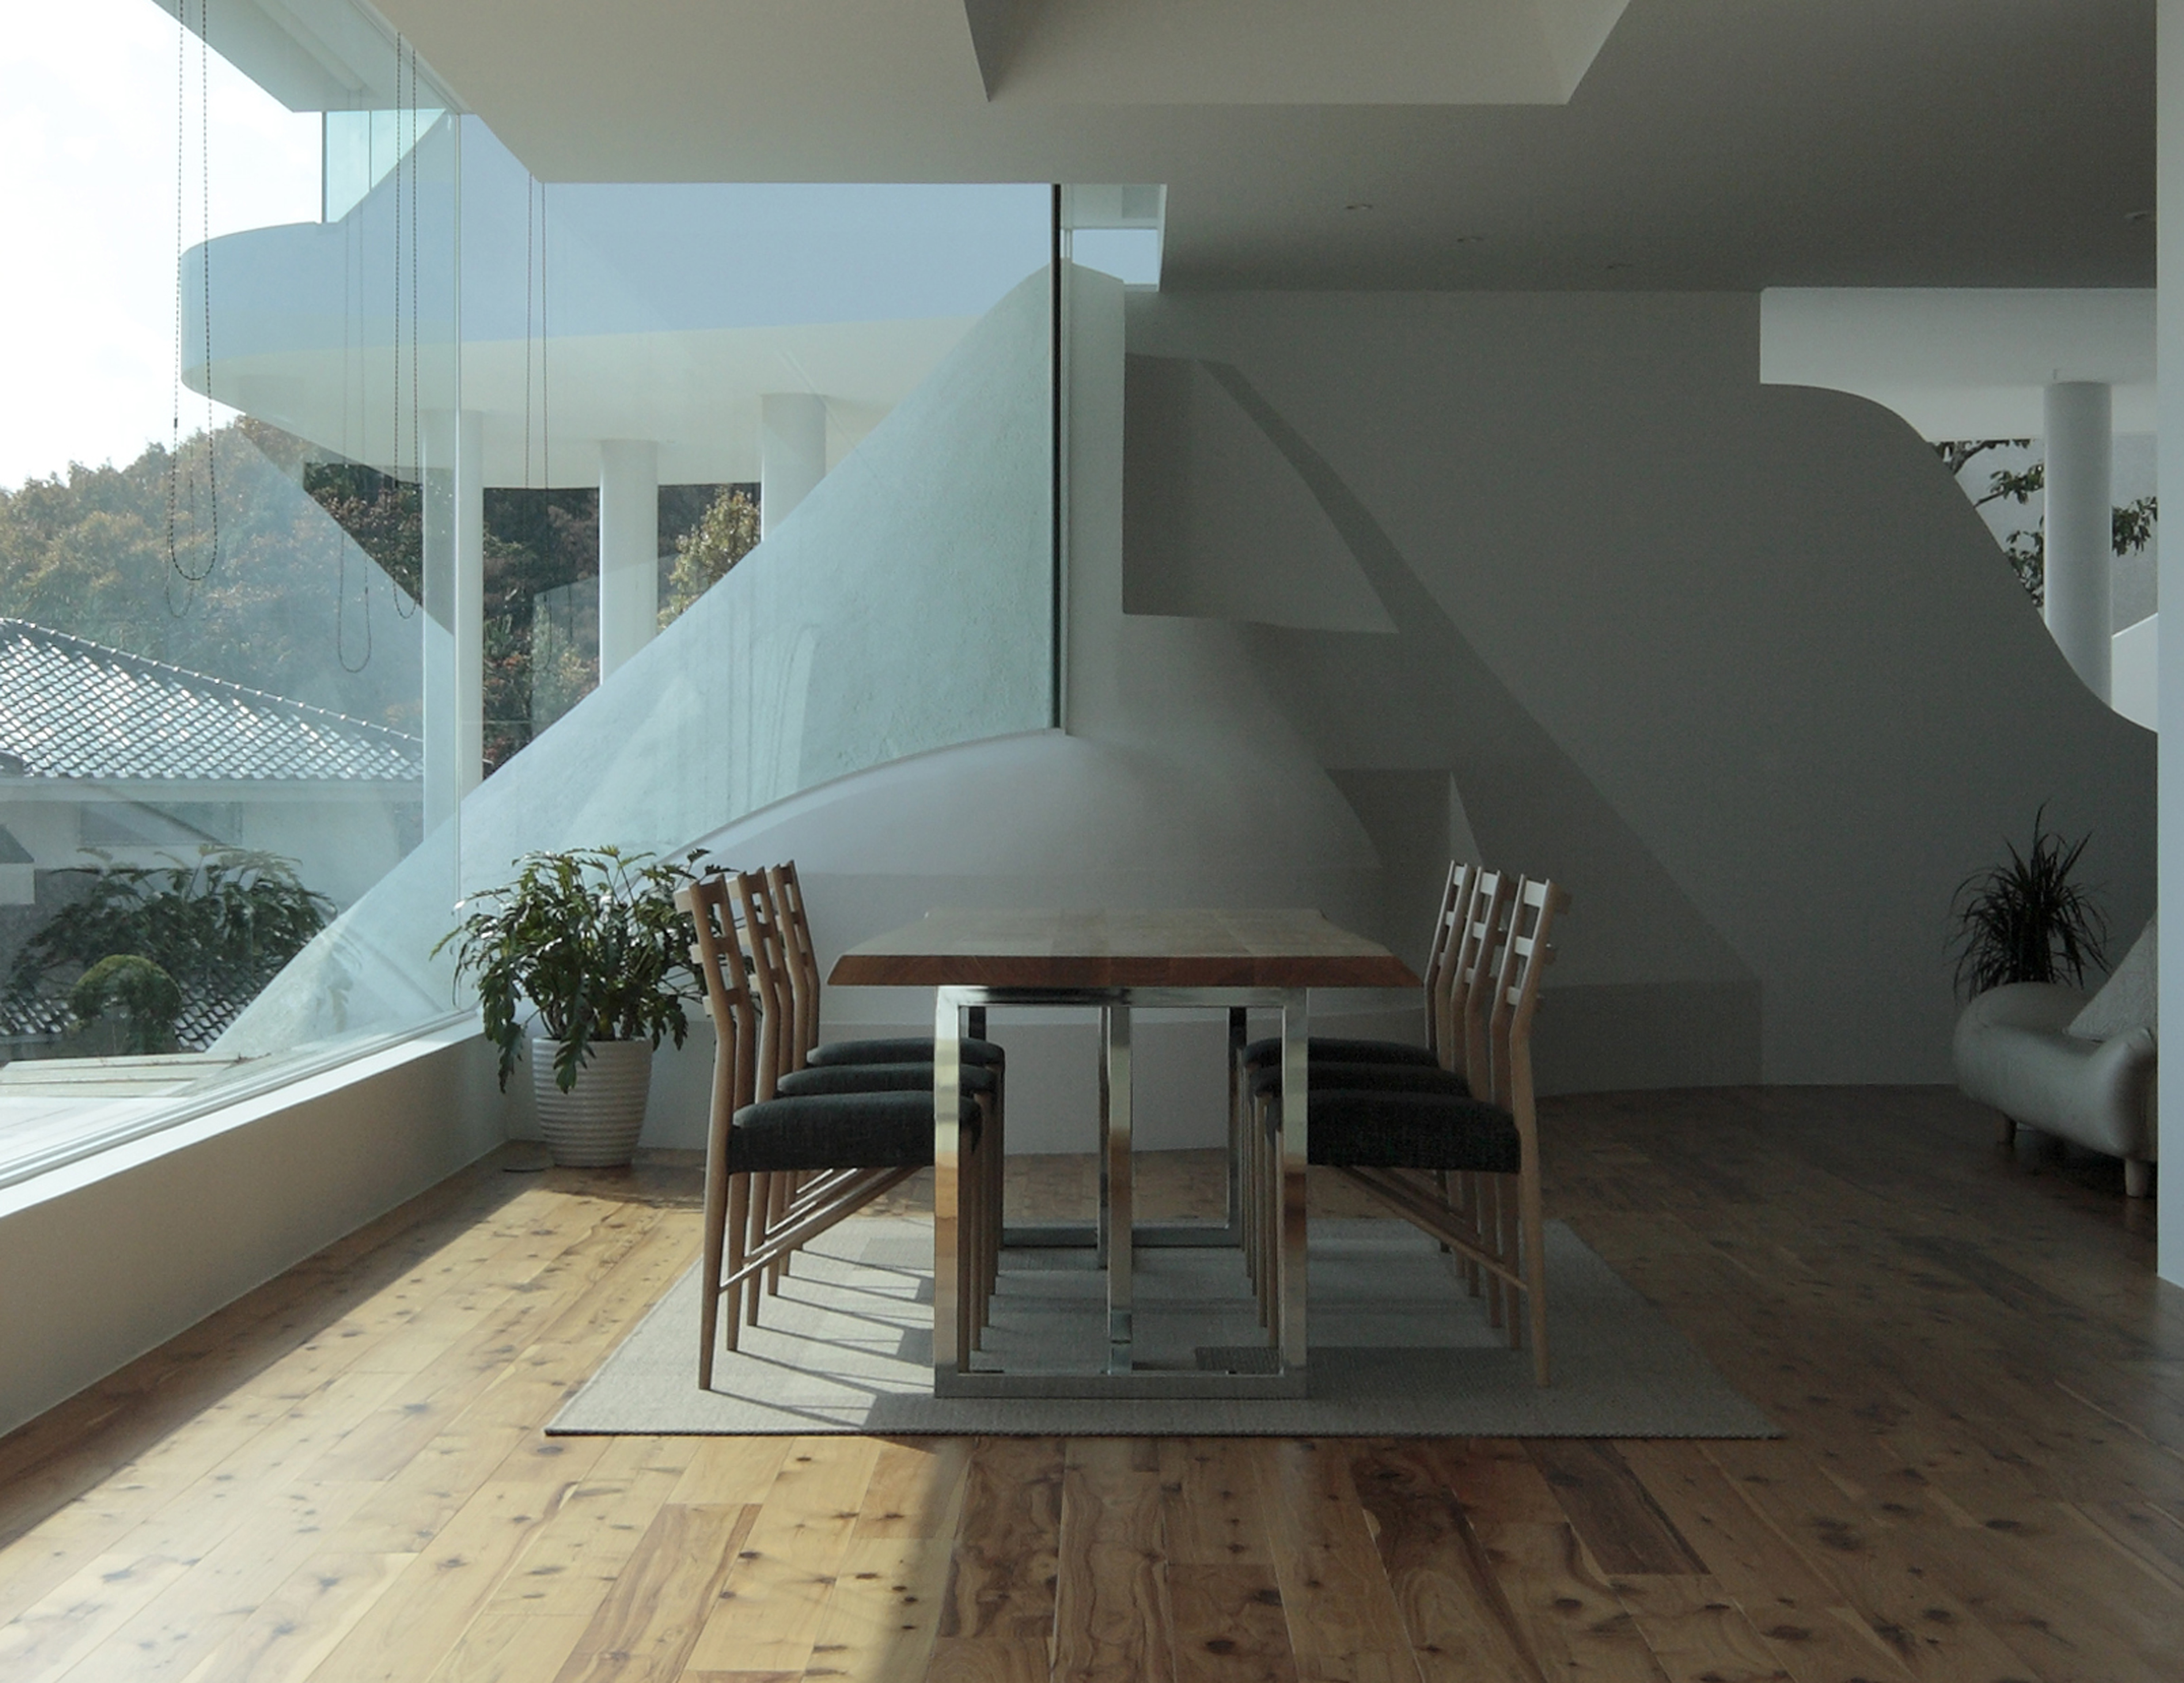 Dining table, in metal frame and carved wood surface, stands next to the immense floor to ceiling glass, overlooking spectacular views from this lower level of the home.